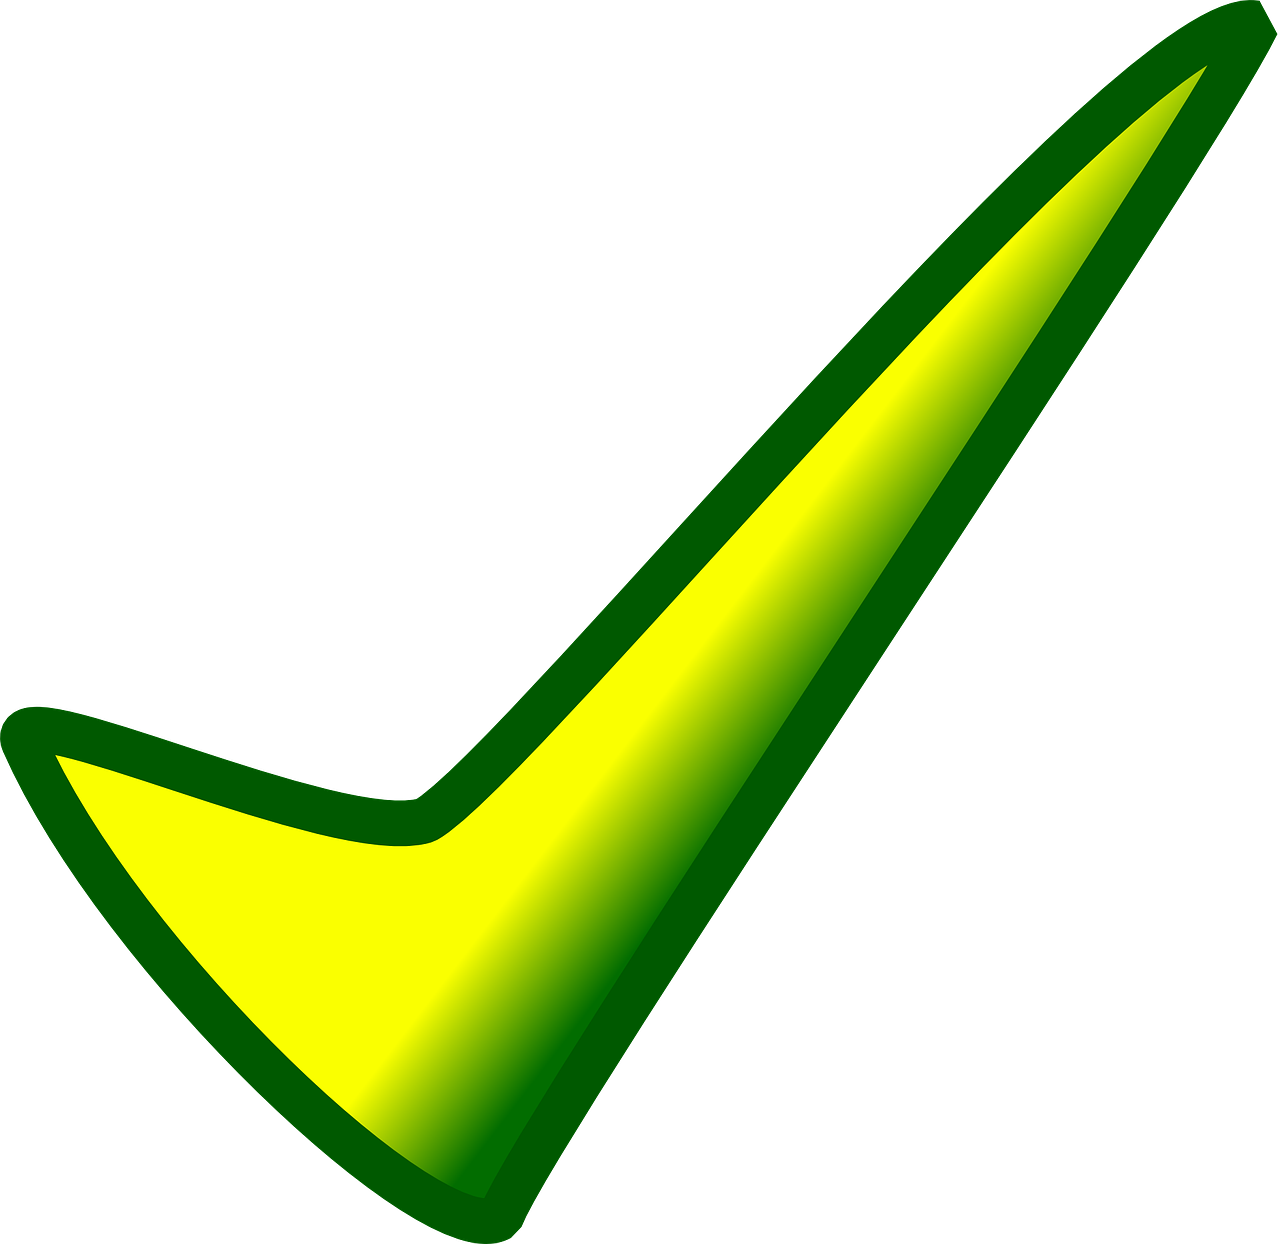 Affirmative Action Checkmark in yellow and green.